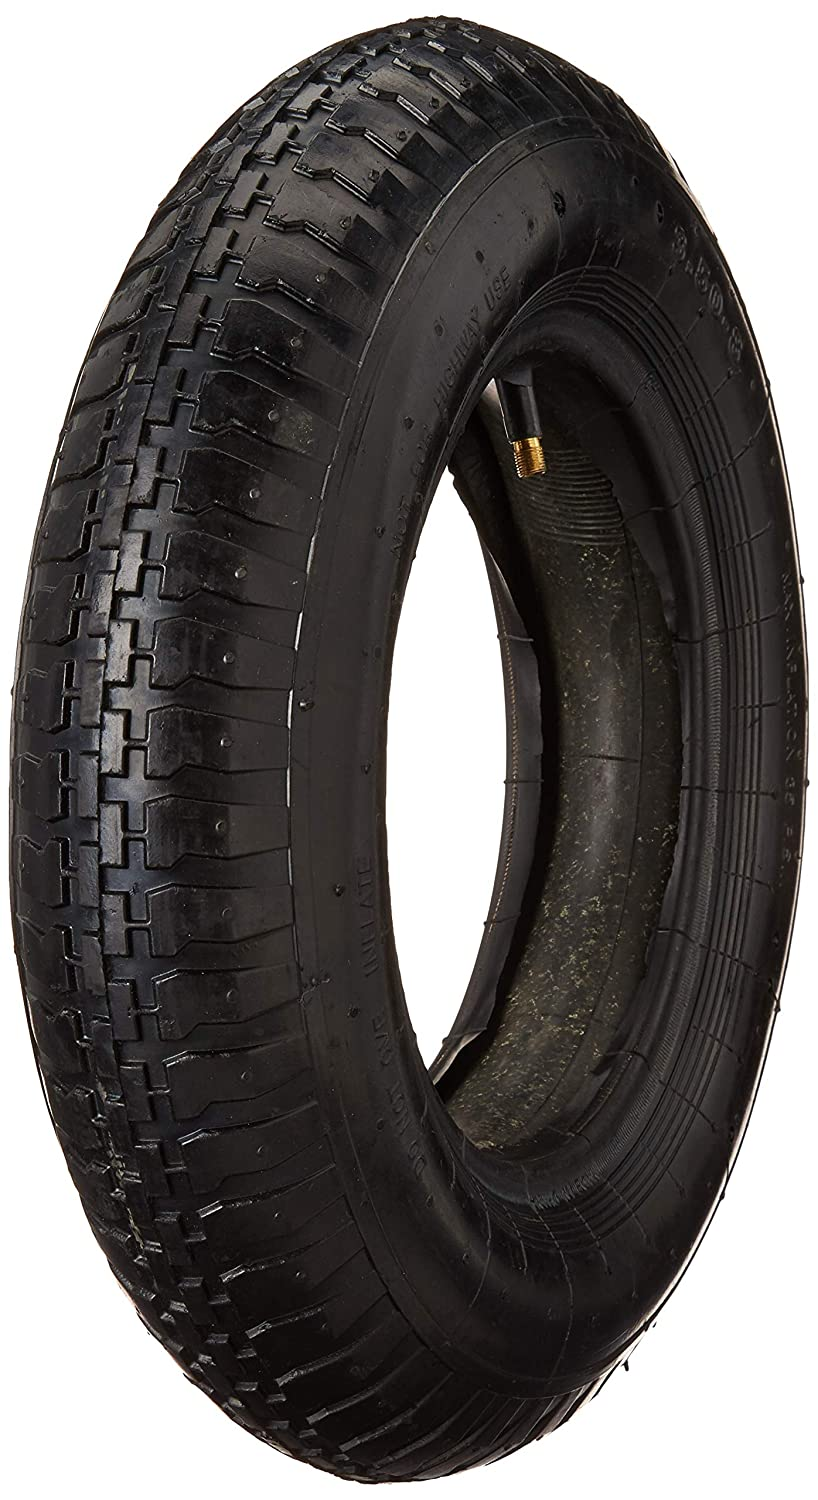 Potreba Tire and Inner Tube Set 3.50-8 for Inflatable Pneumatic Wheelbarrow Wheel 14,5 inch 8'' Rim